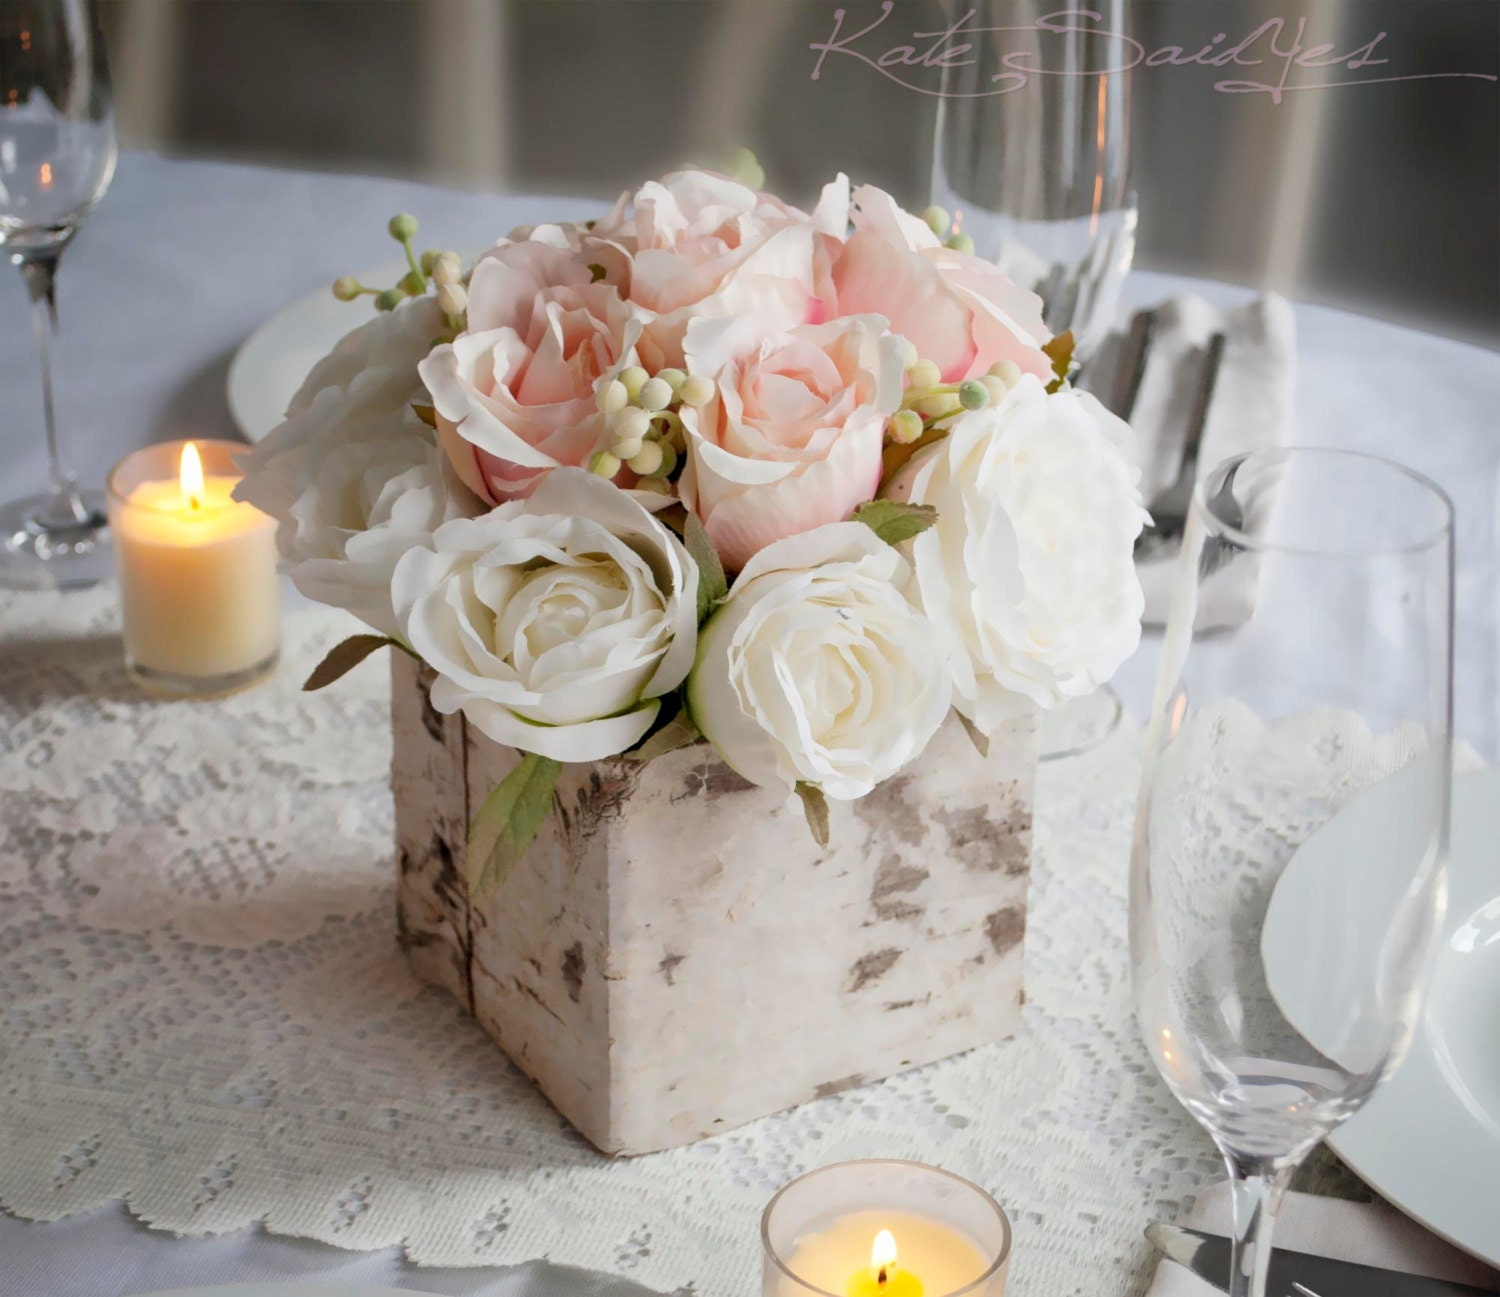 Red Wedding Ideas On A Budget: Wedding Centerpiece Rustic Blush And Ivory Rose Wedding